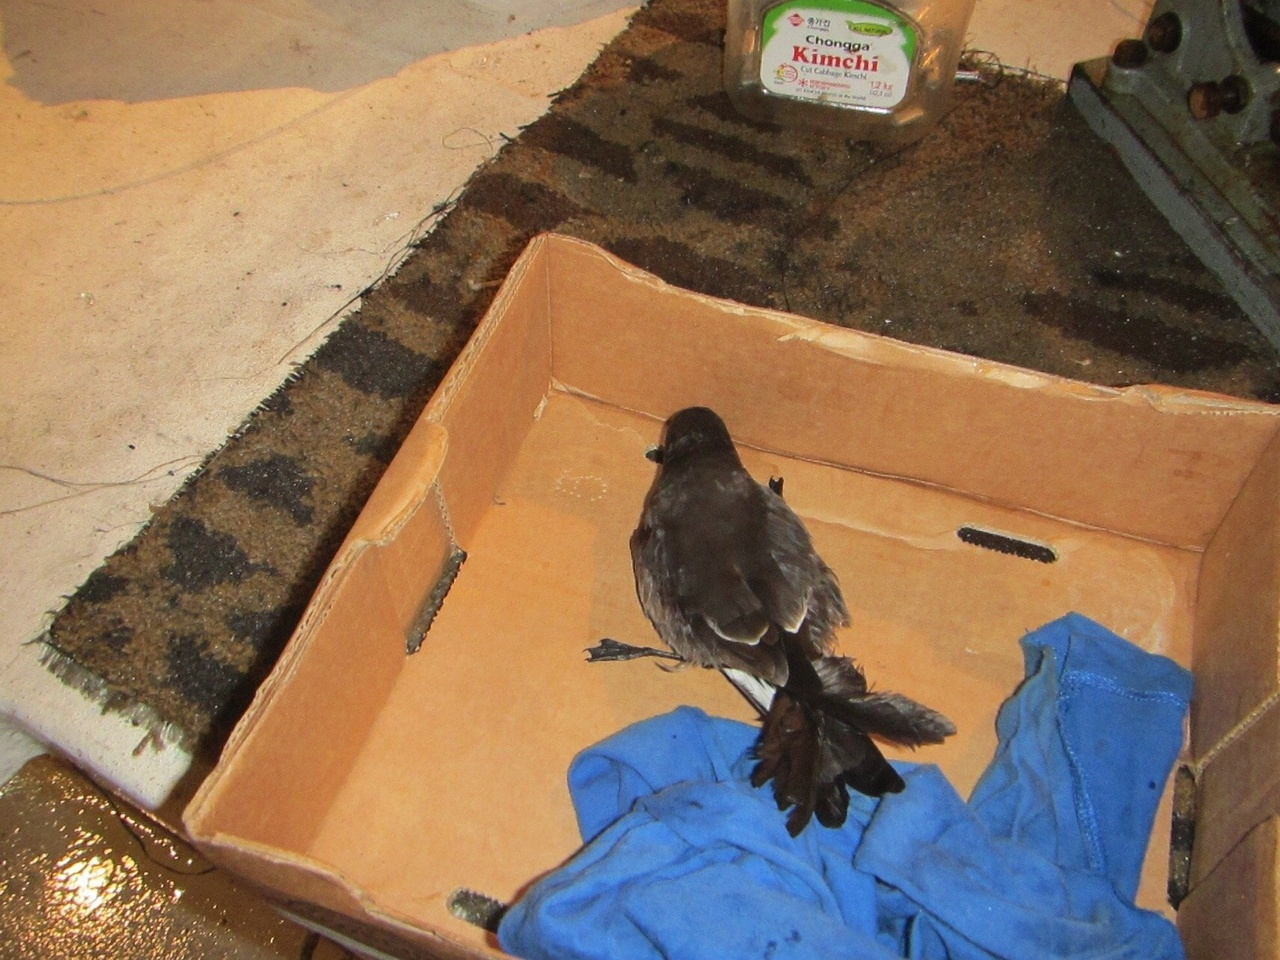 Storm petrel on deck, being cared for.